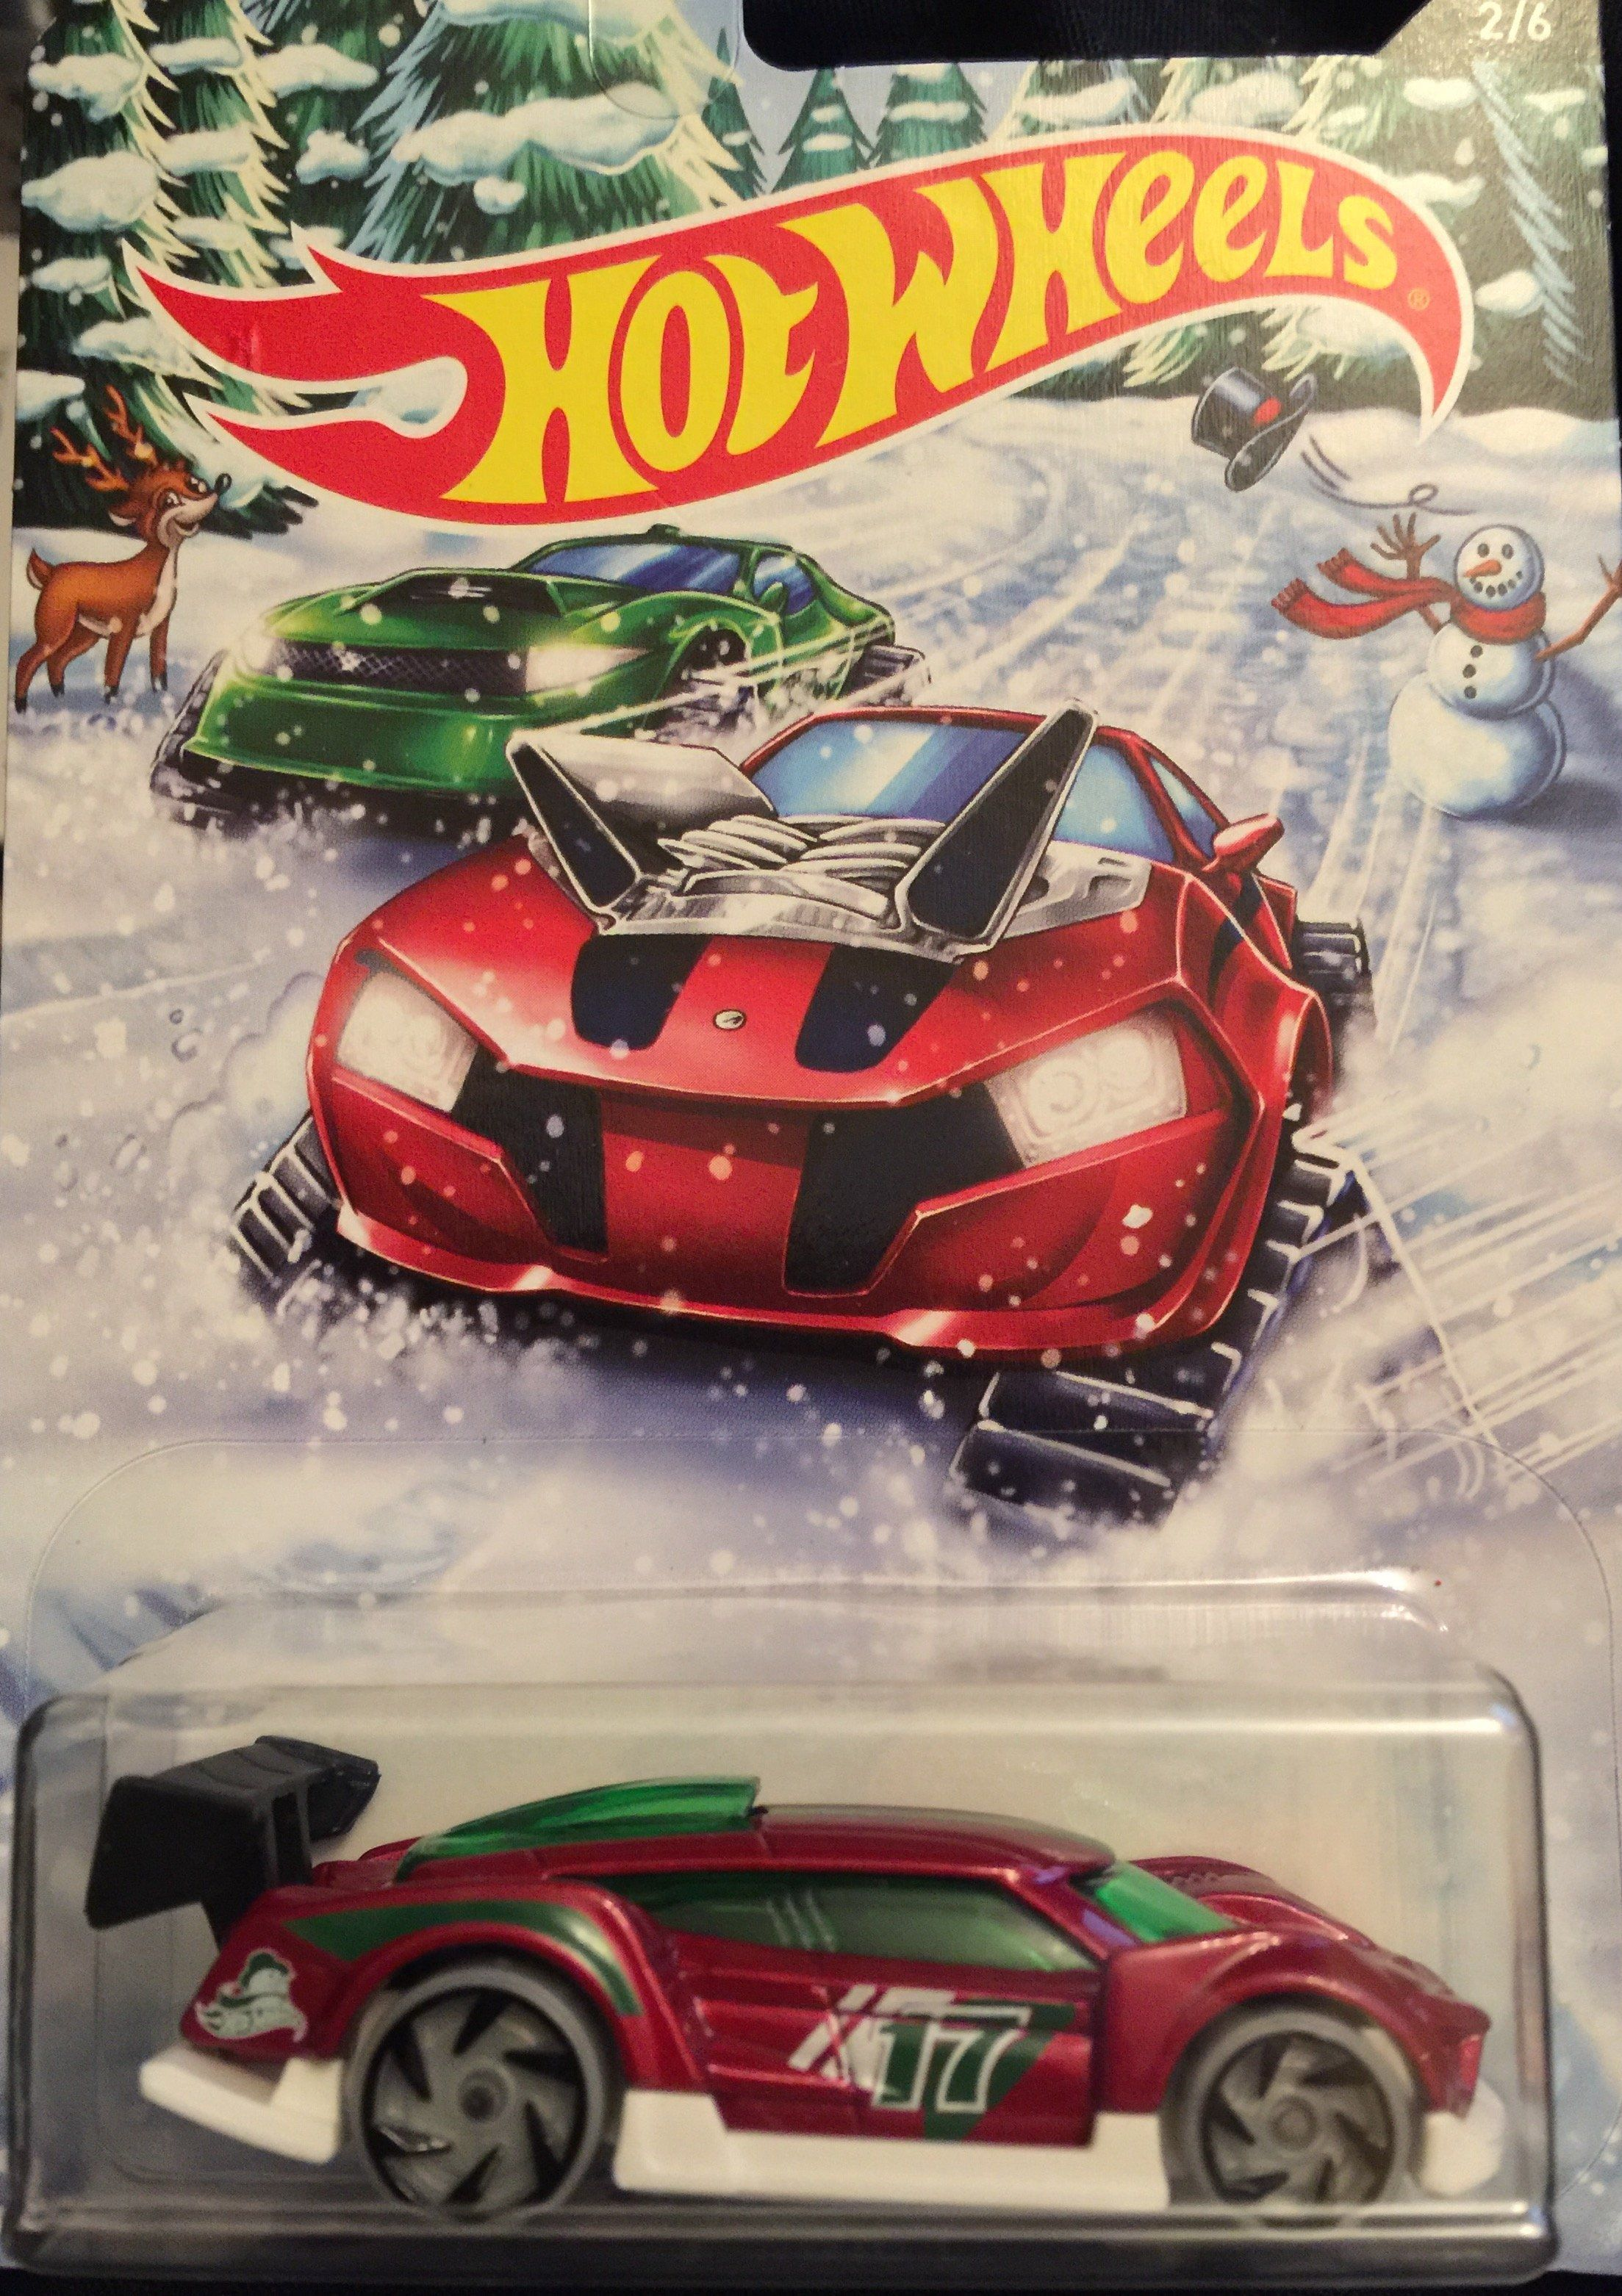 Come In For Amazing Deals On These New Products Mazdeal Com Http Maz Deal Myshopify Com Products Hot Wheels Super Blitzen Holi Hot Wheels Hot Holidays 2017